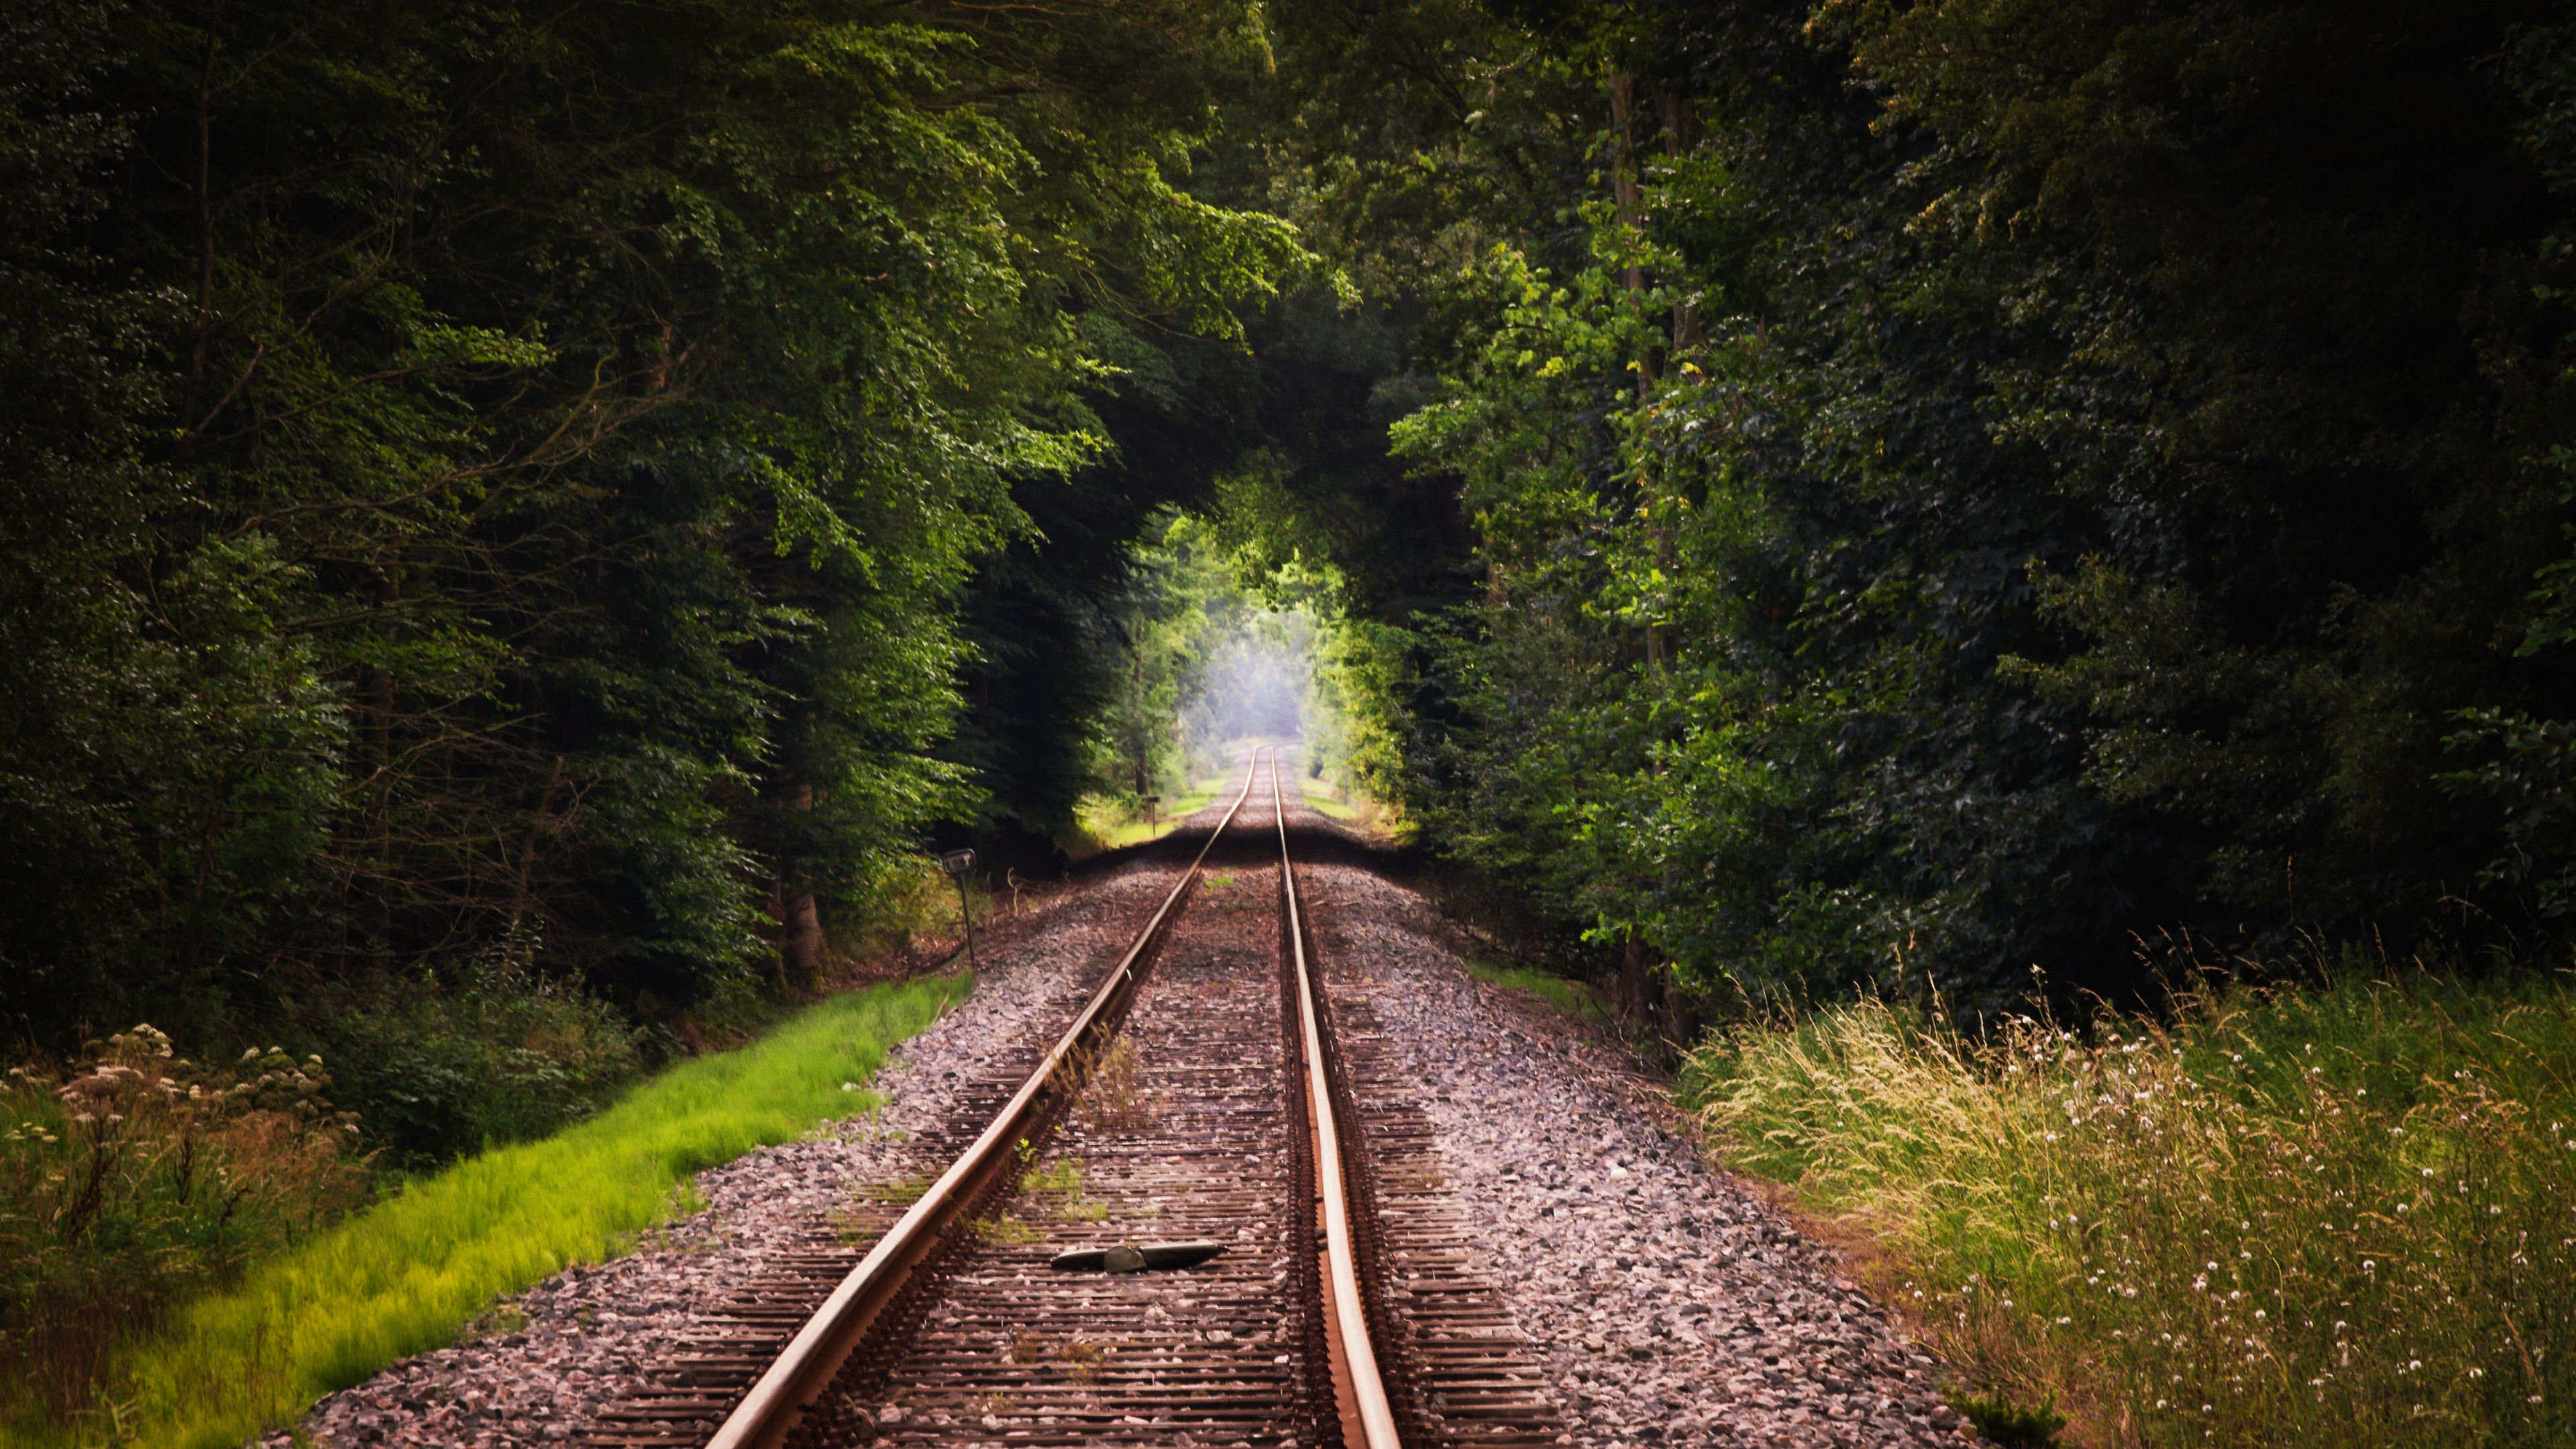 Train track hd nature 4k wallpapers images backgrounds photos and pictures - Track wallpaper hd ...